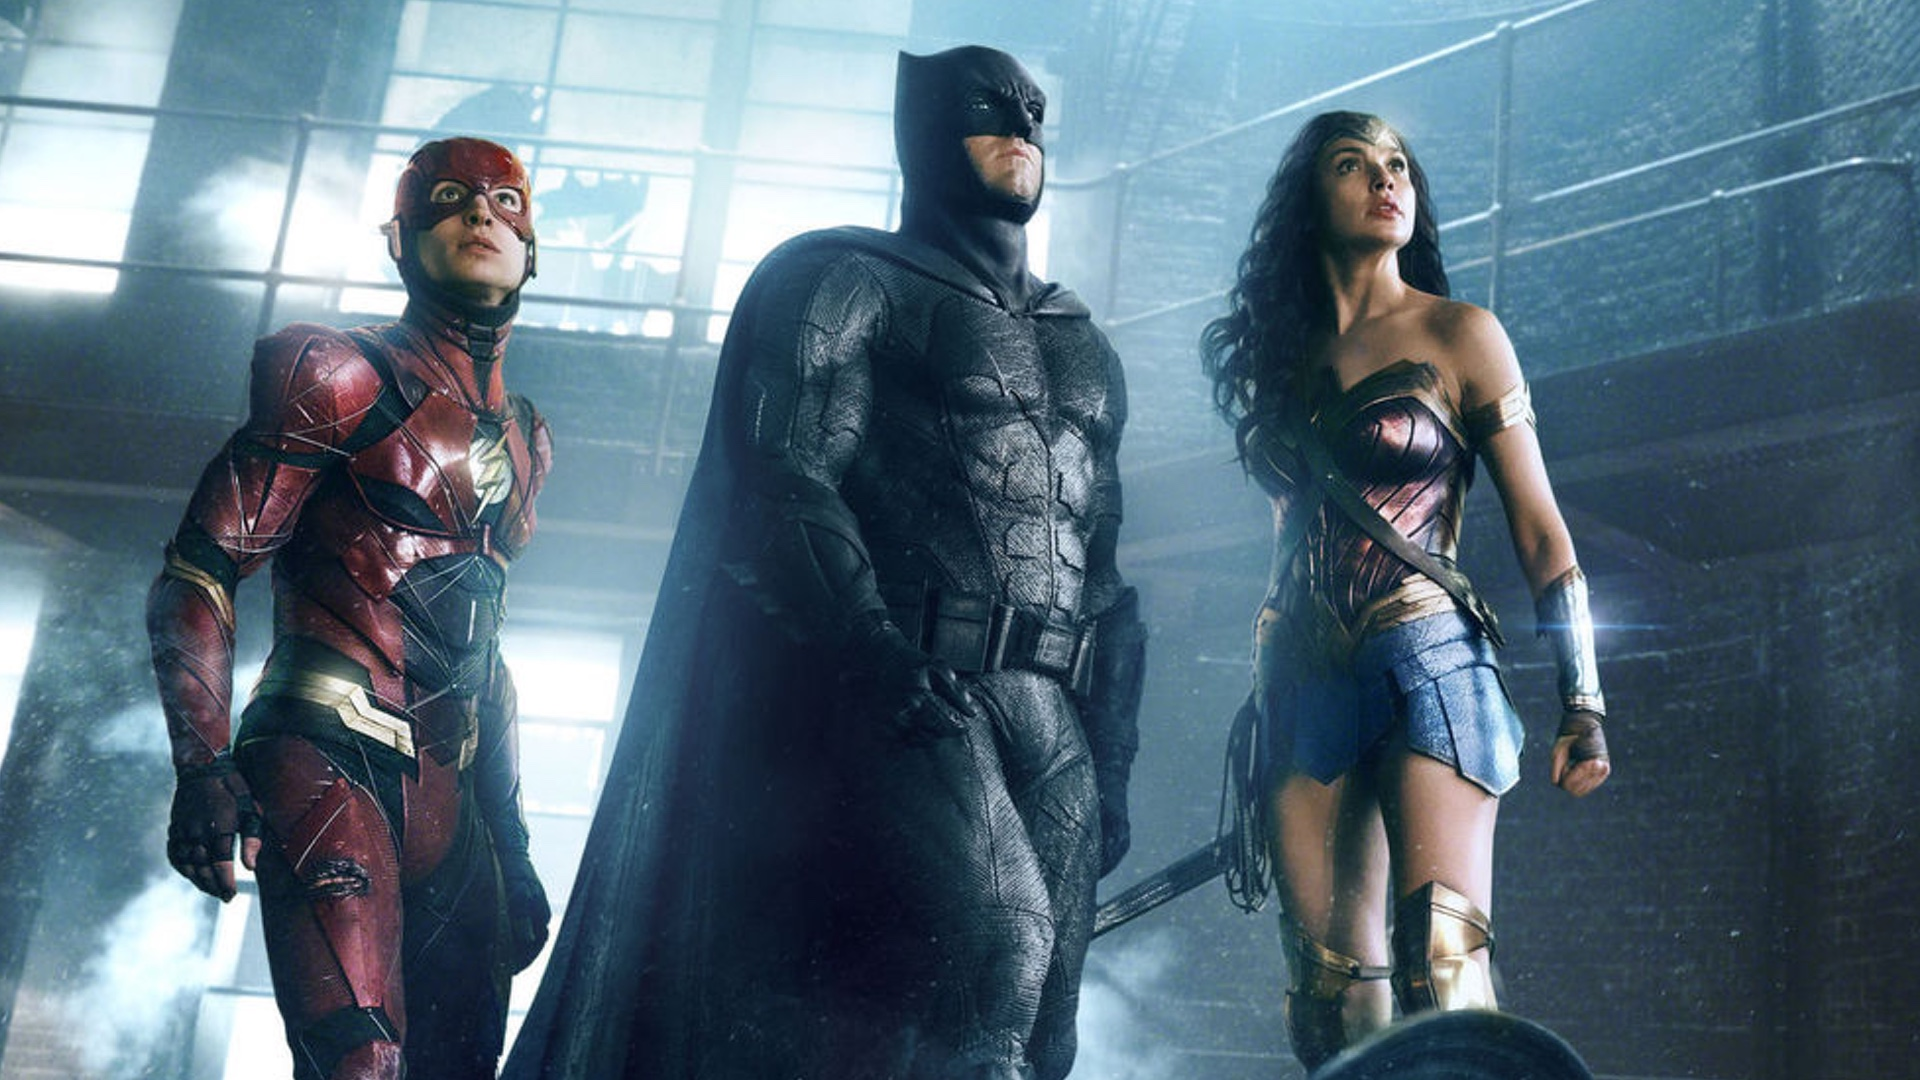 oh-borther-now-fans-have-started-a-petition-for-a-joss-whedon-cut-of-justice-league-social.jpg